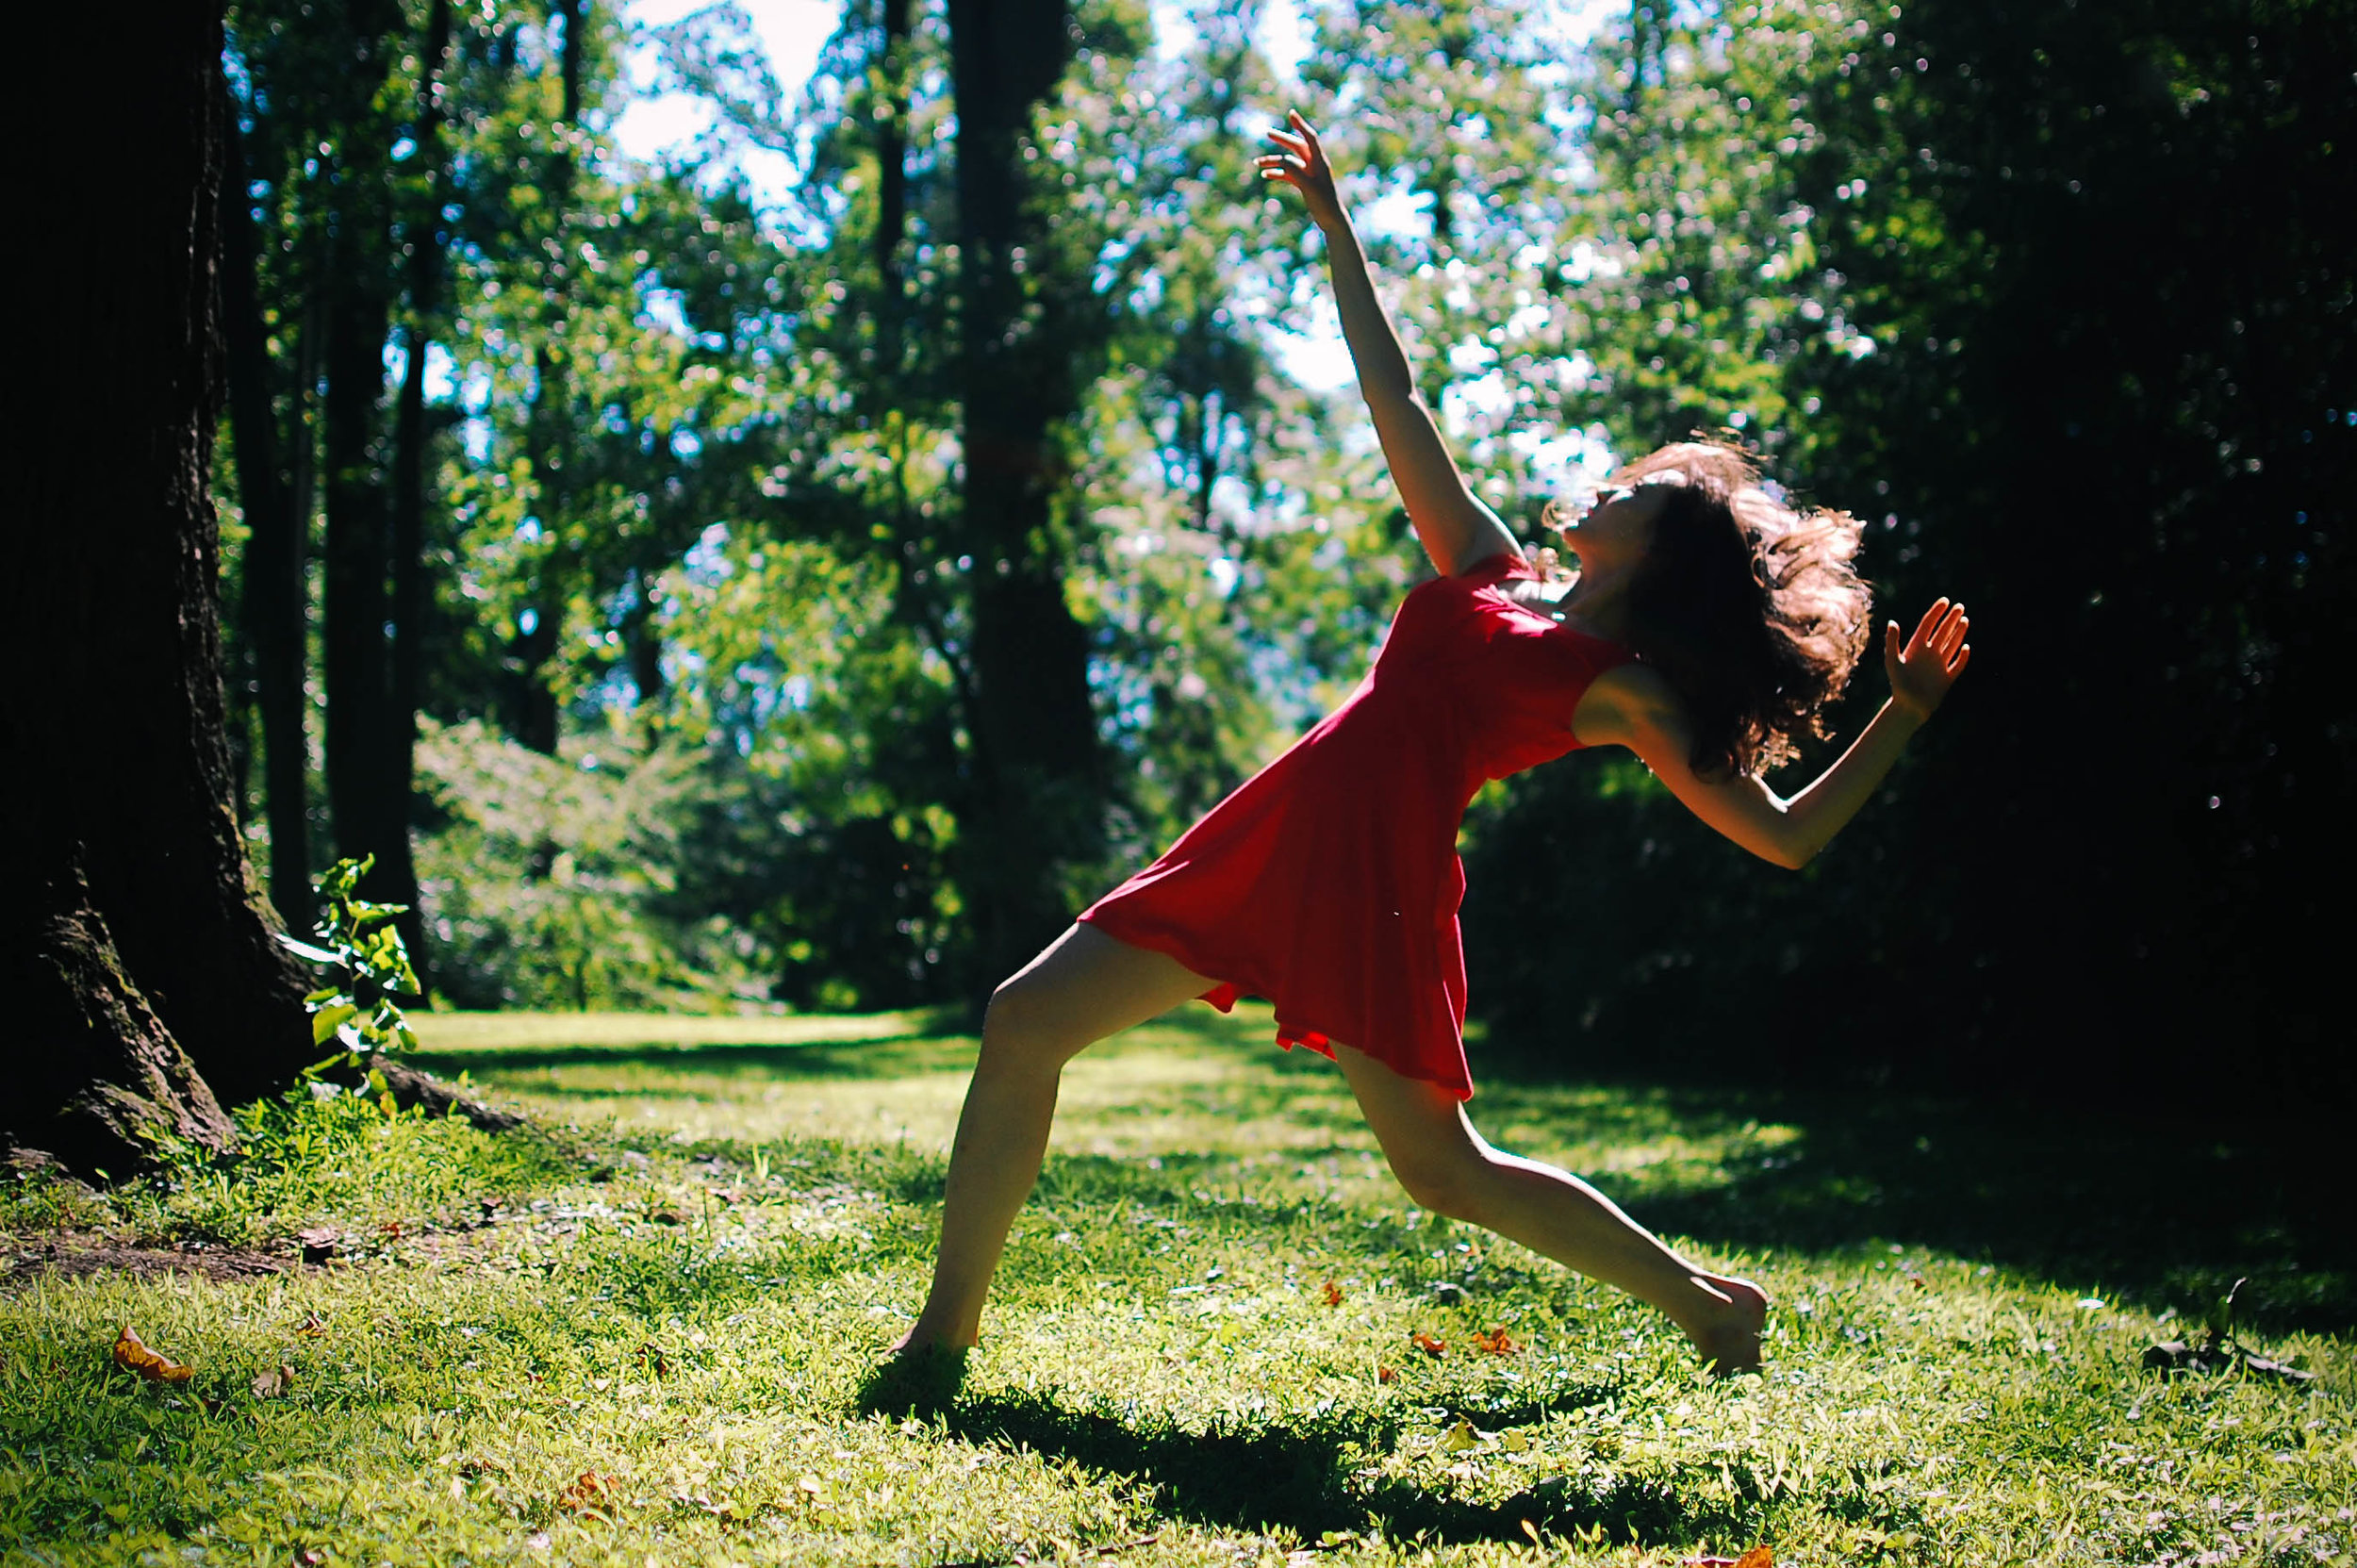 J. dances in the wind in Cherry Hill Park